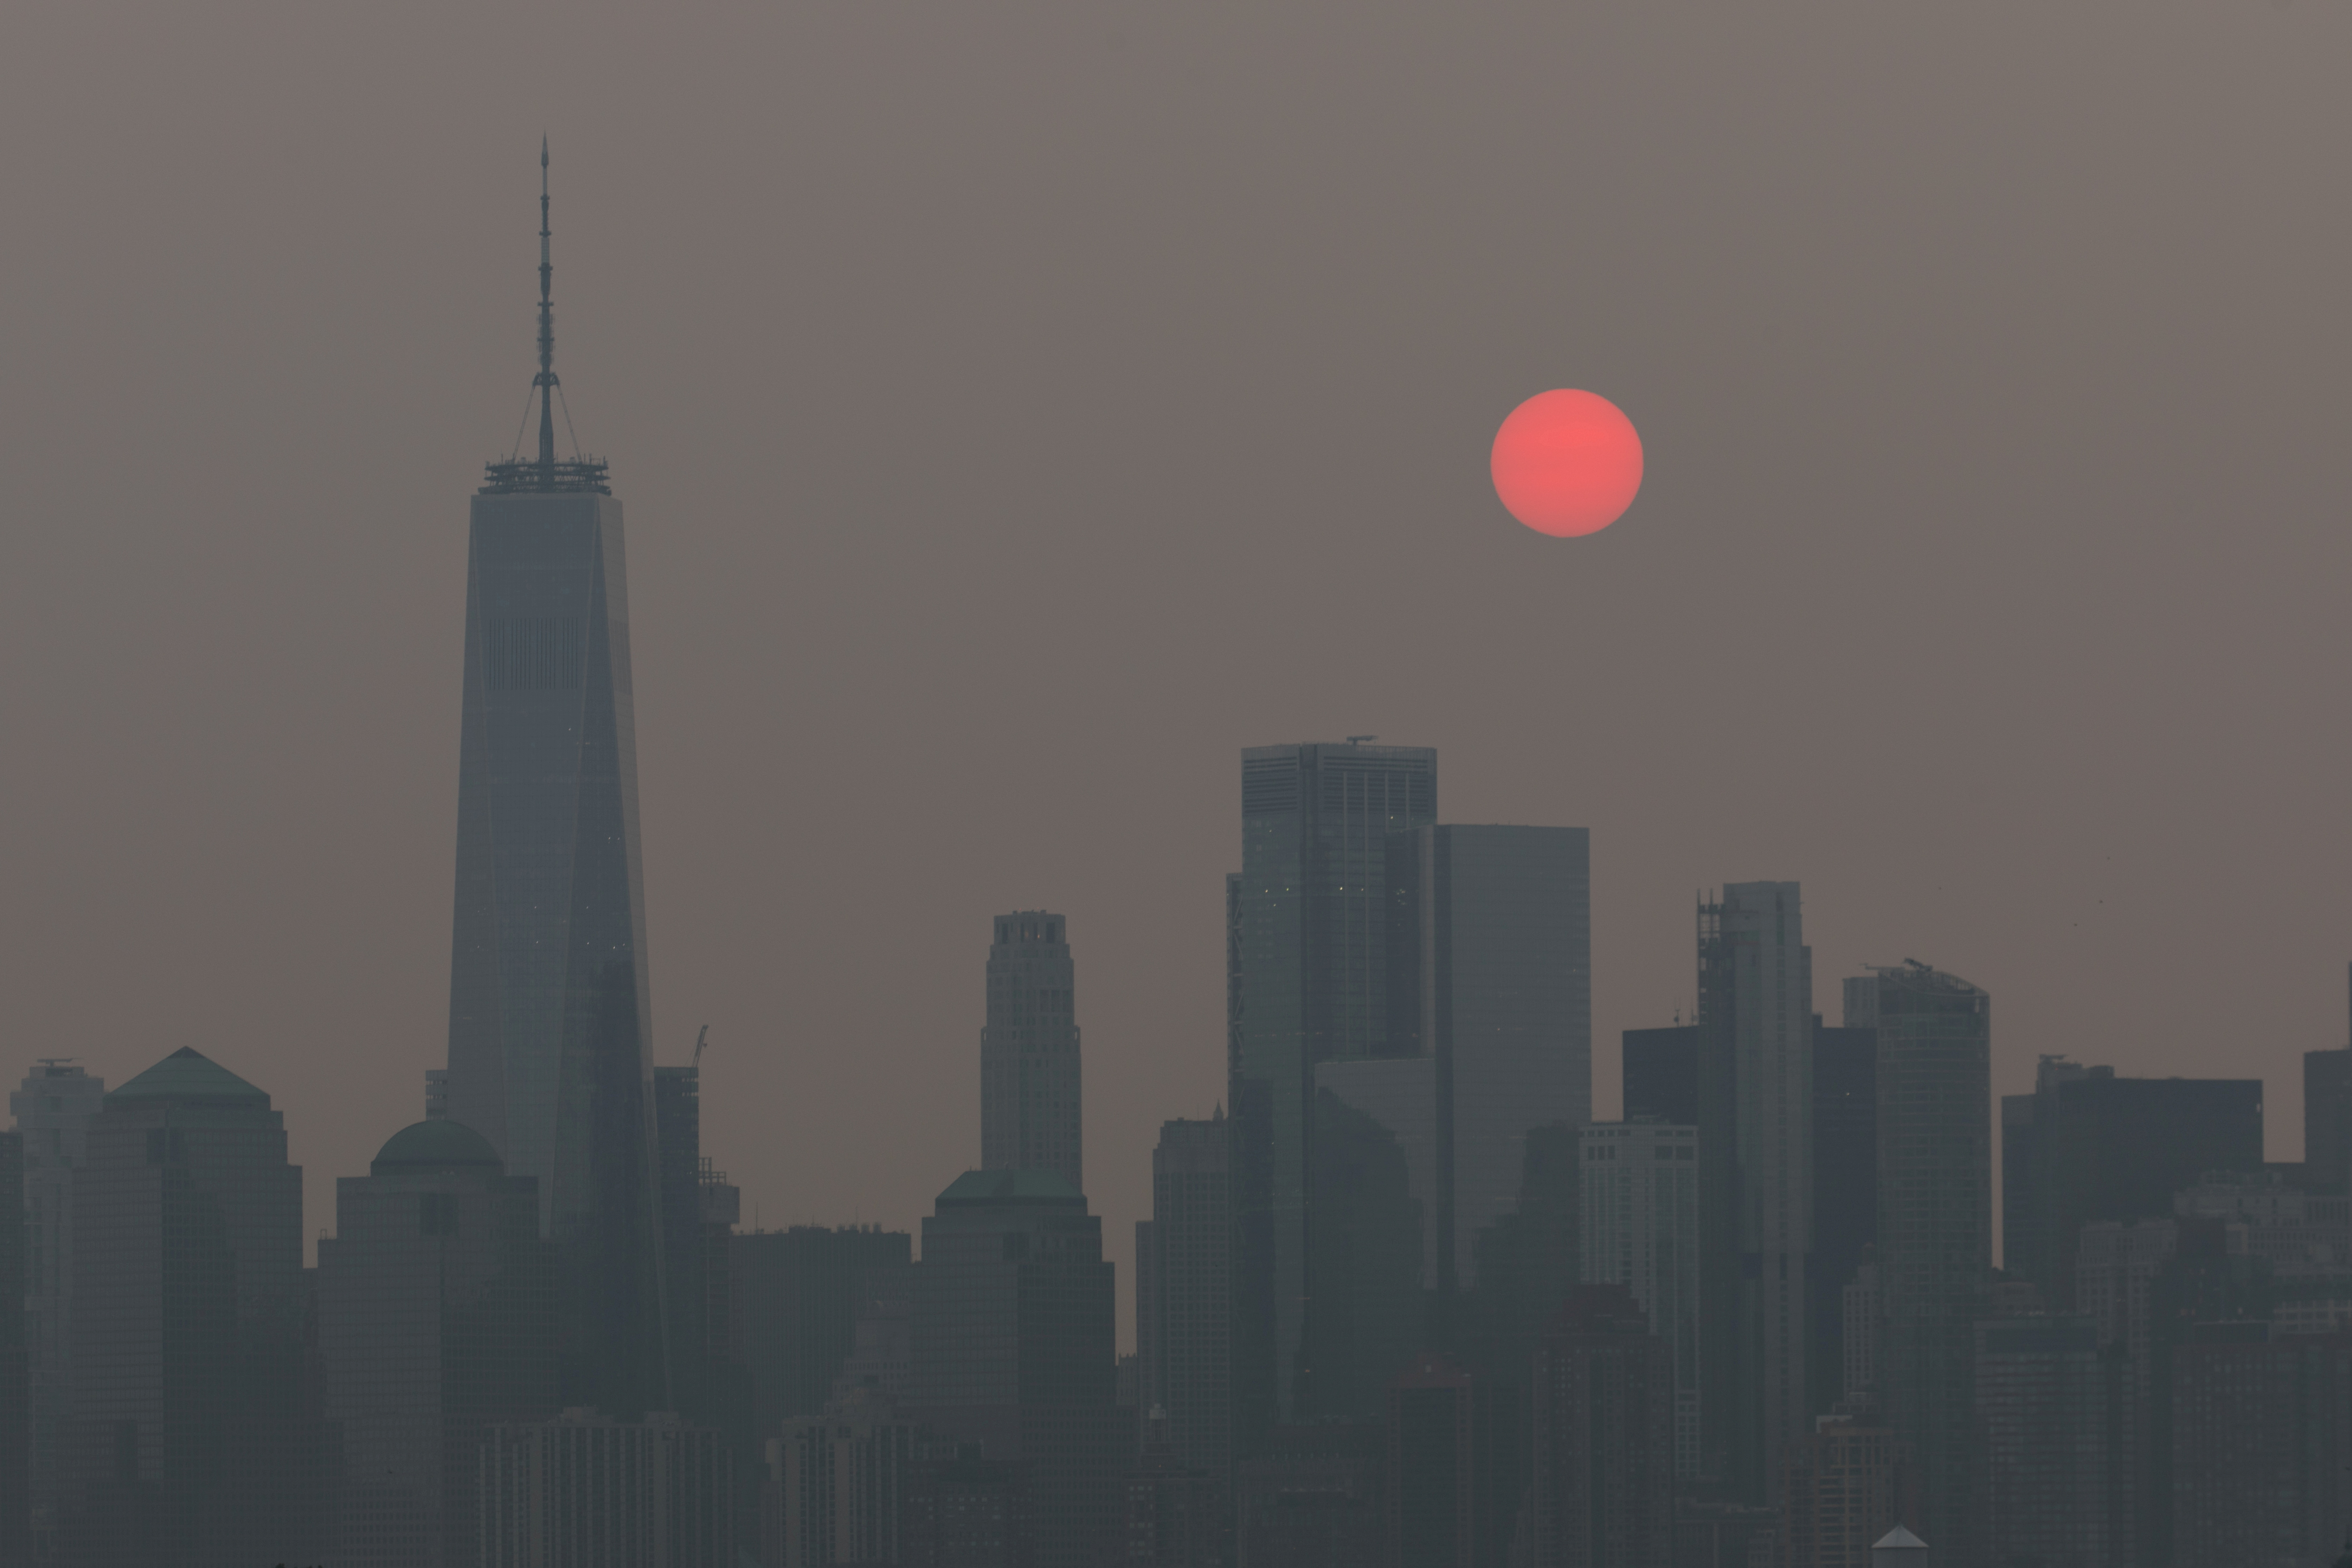 The sun, appearing orange due to smoke haze from forest fires, rises behind the skyline in New York City, New York, U.S., July 21, 2021. REUTERS/Bjoern Kils/New York Media Boat